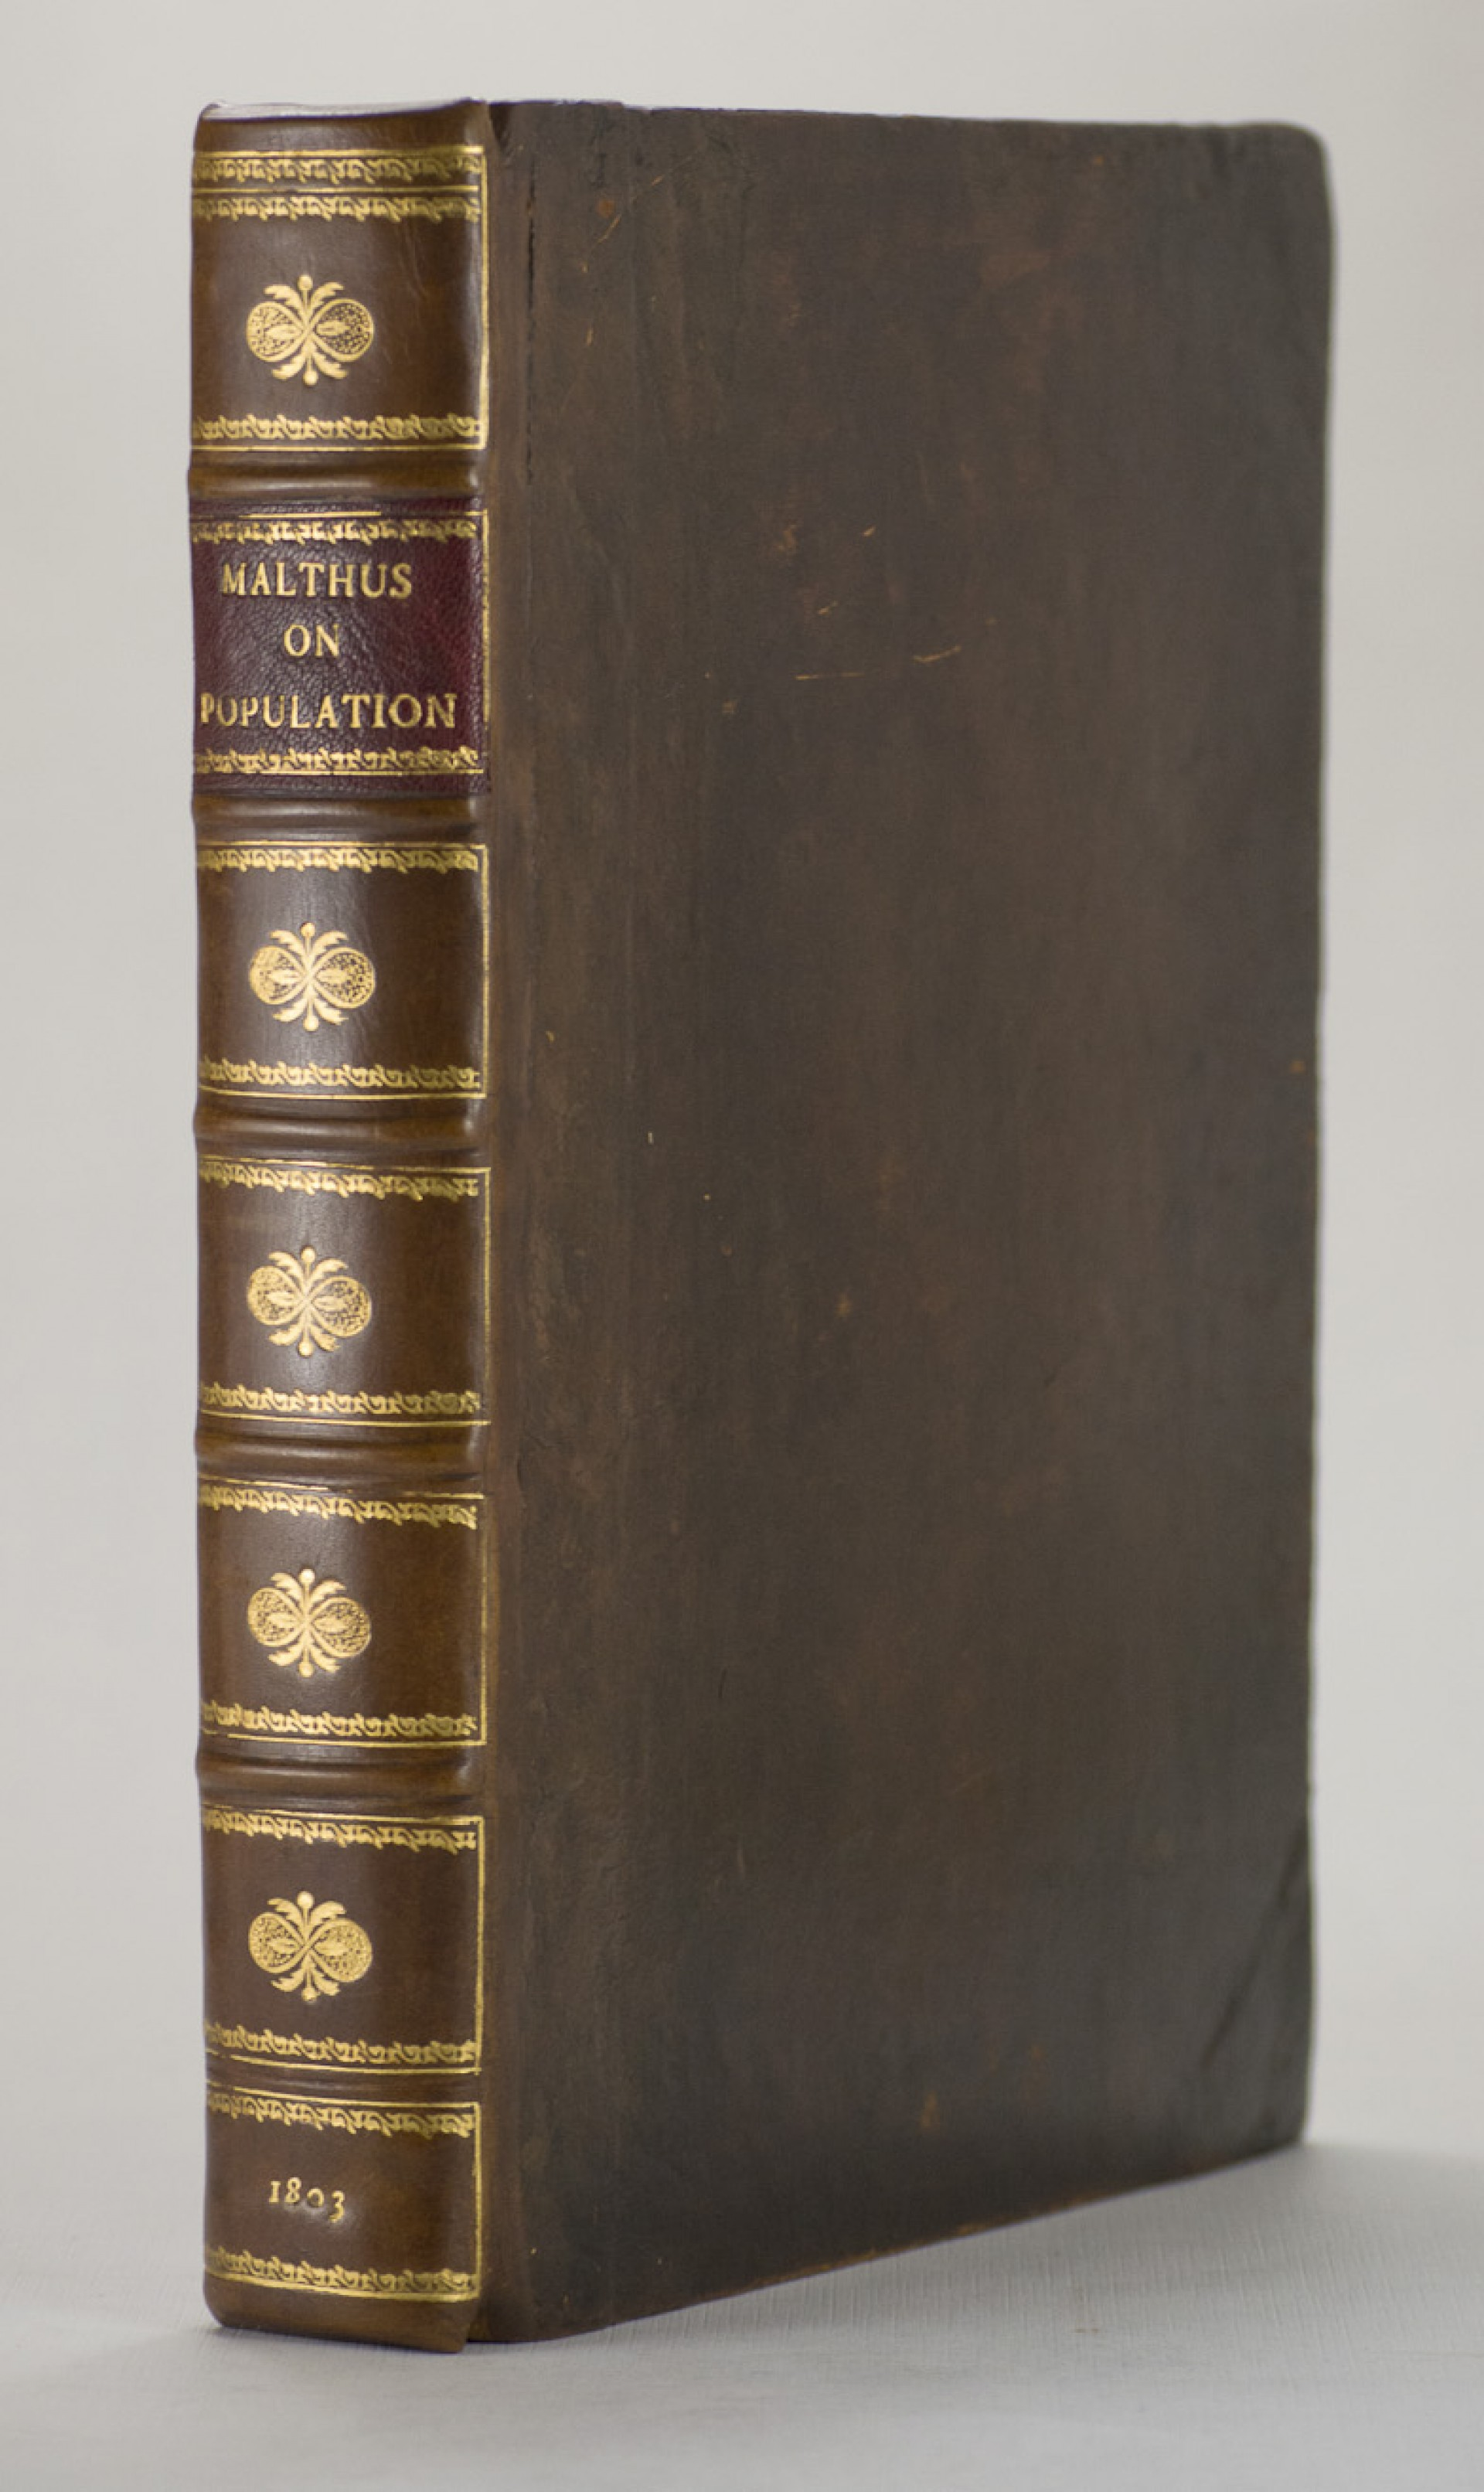 012 Thomas Malthus An Essay On The Principle Of Population 65276 1 Marvelous Summary Analysis Argued In His (1798) That 1920